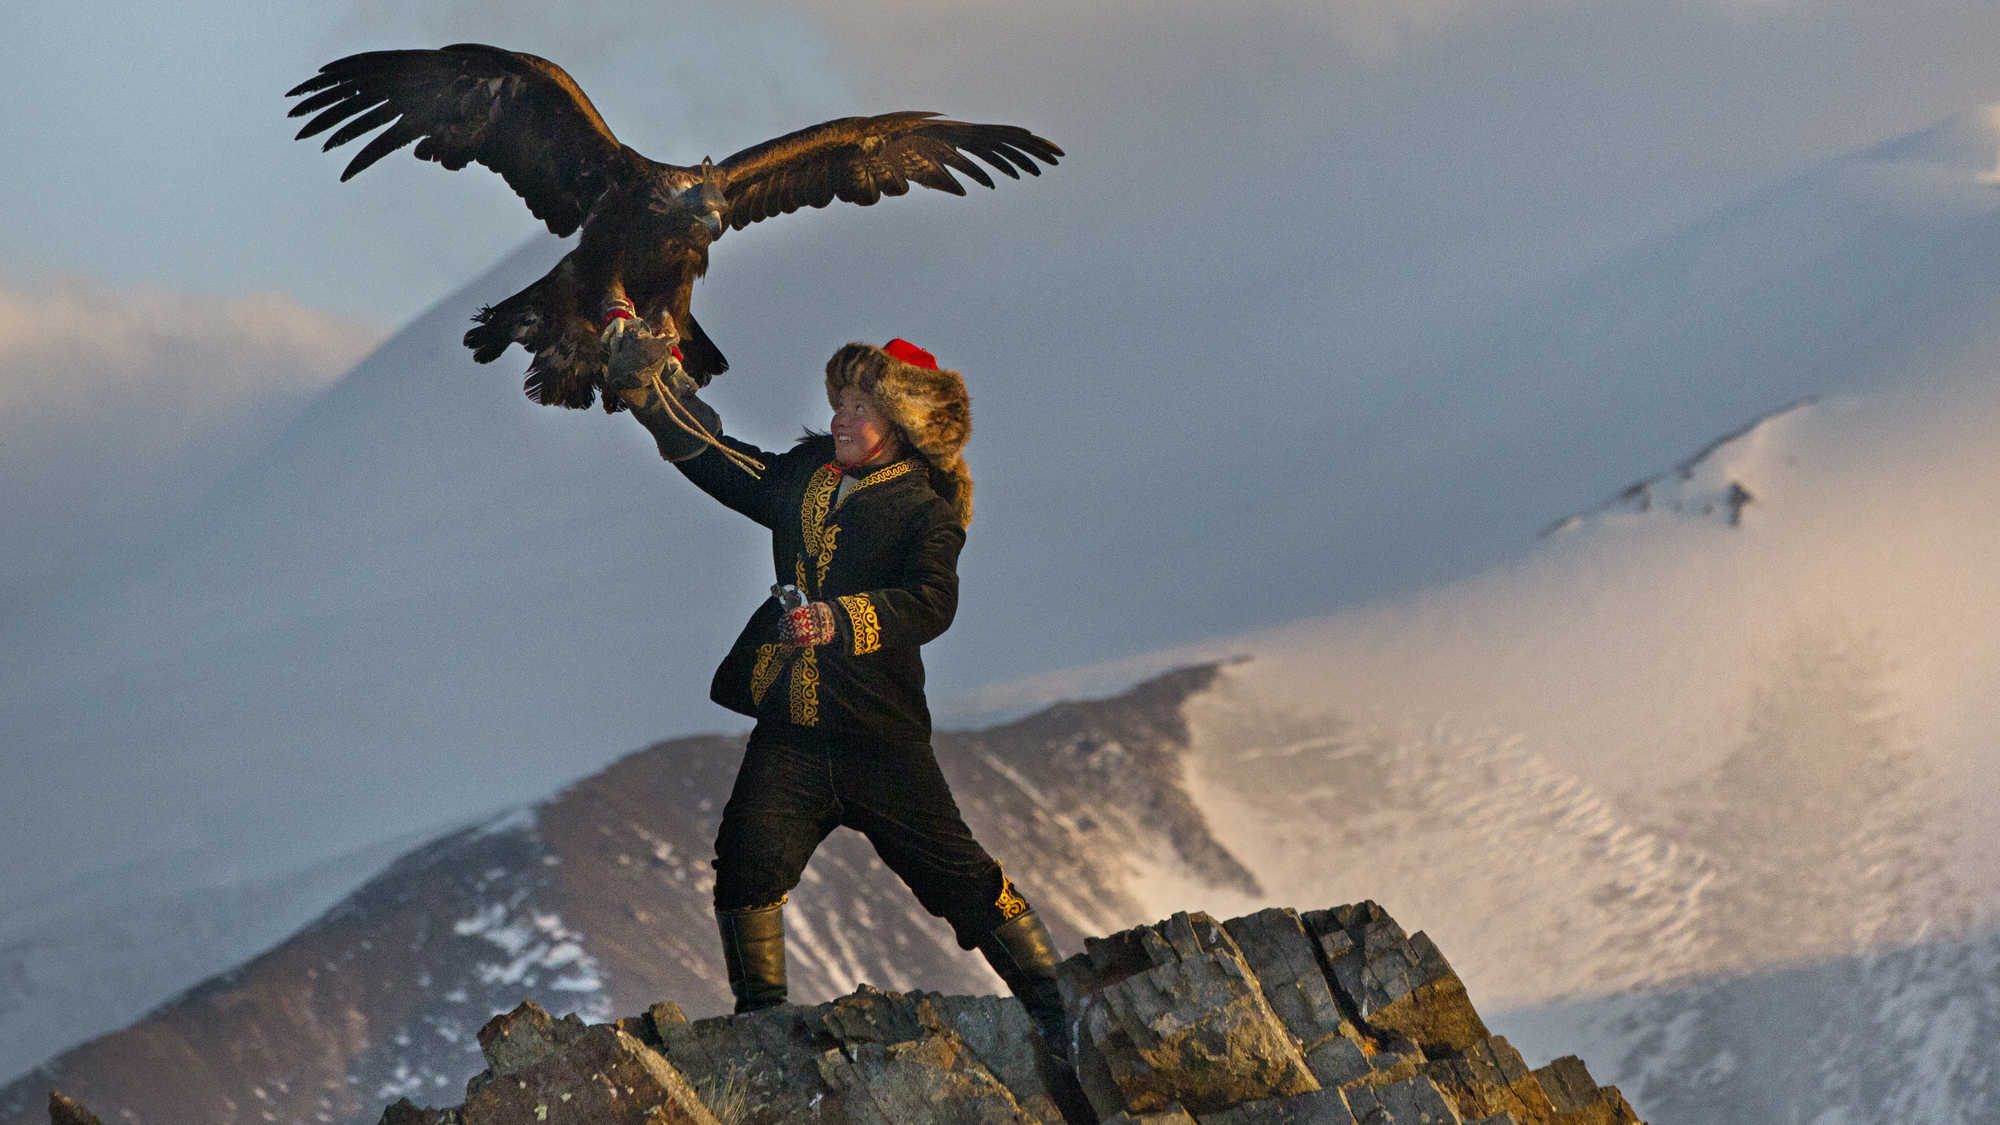 The Eagle Huntress (image 2)